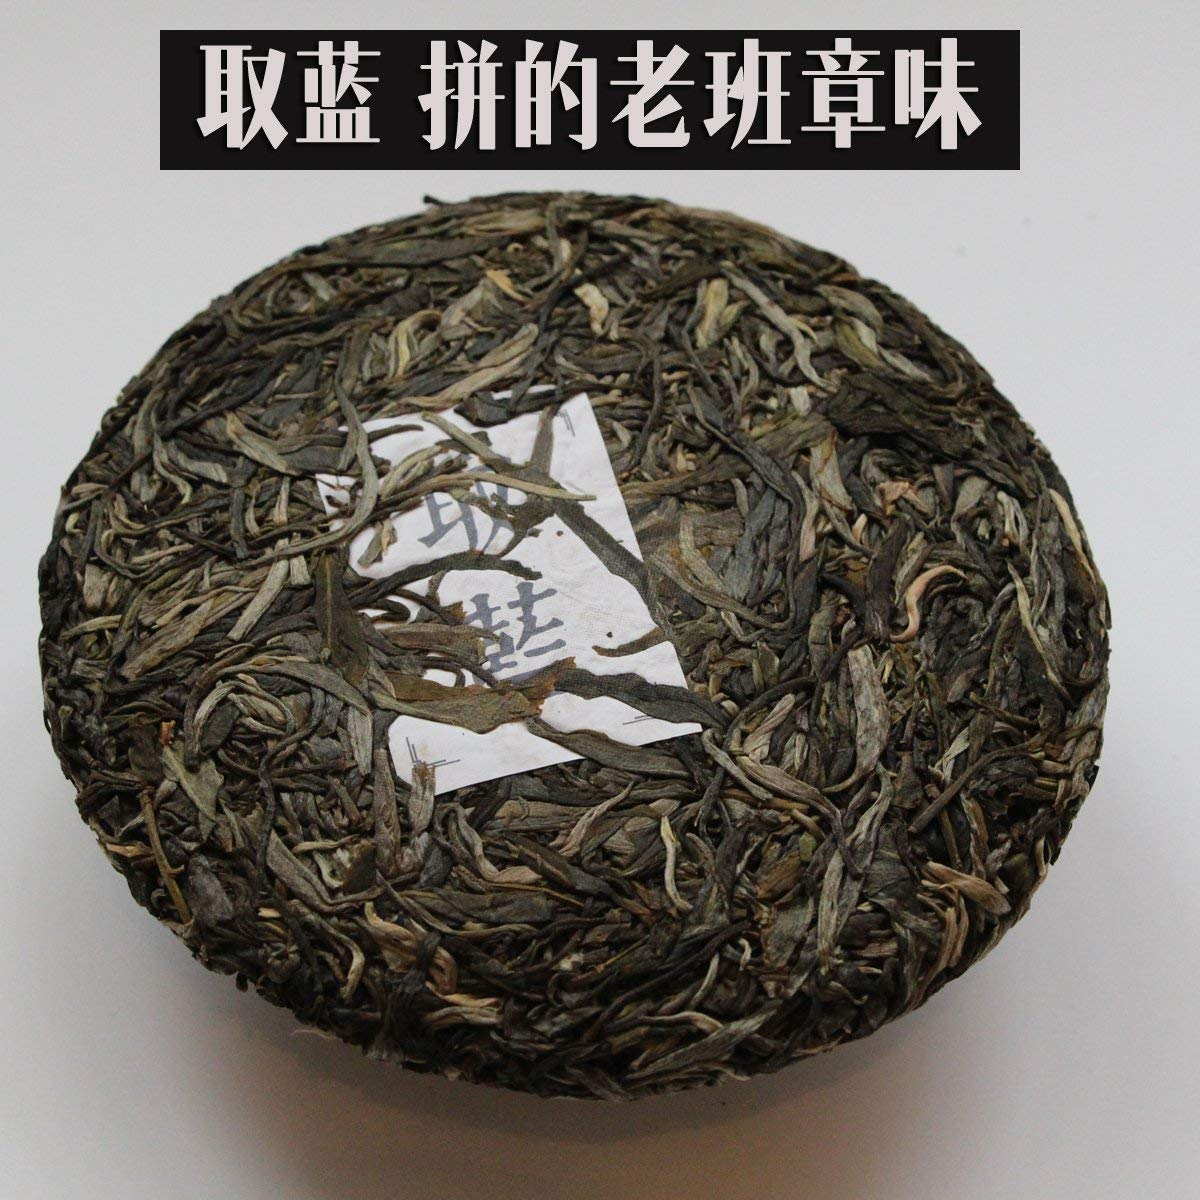 CHIY-GBC Ltd Chinese tasty snack, tea ceremony From 2017 Pu'er Tea blue tea CHIY-GBC Ltd Chinese tasty snack, tea ceremonyring blending tea taste is close to the old class chapter 200 grams